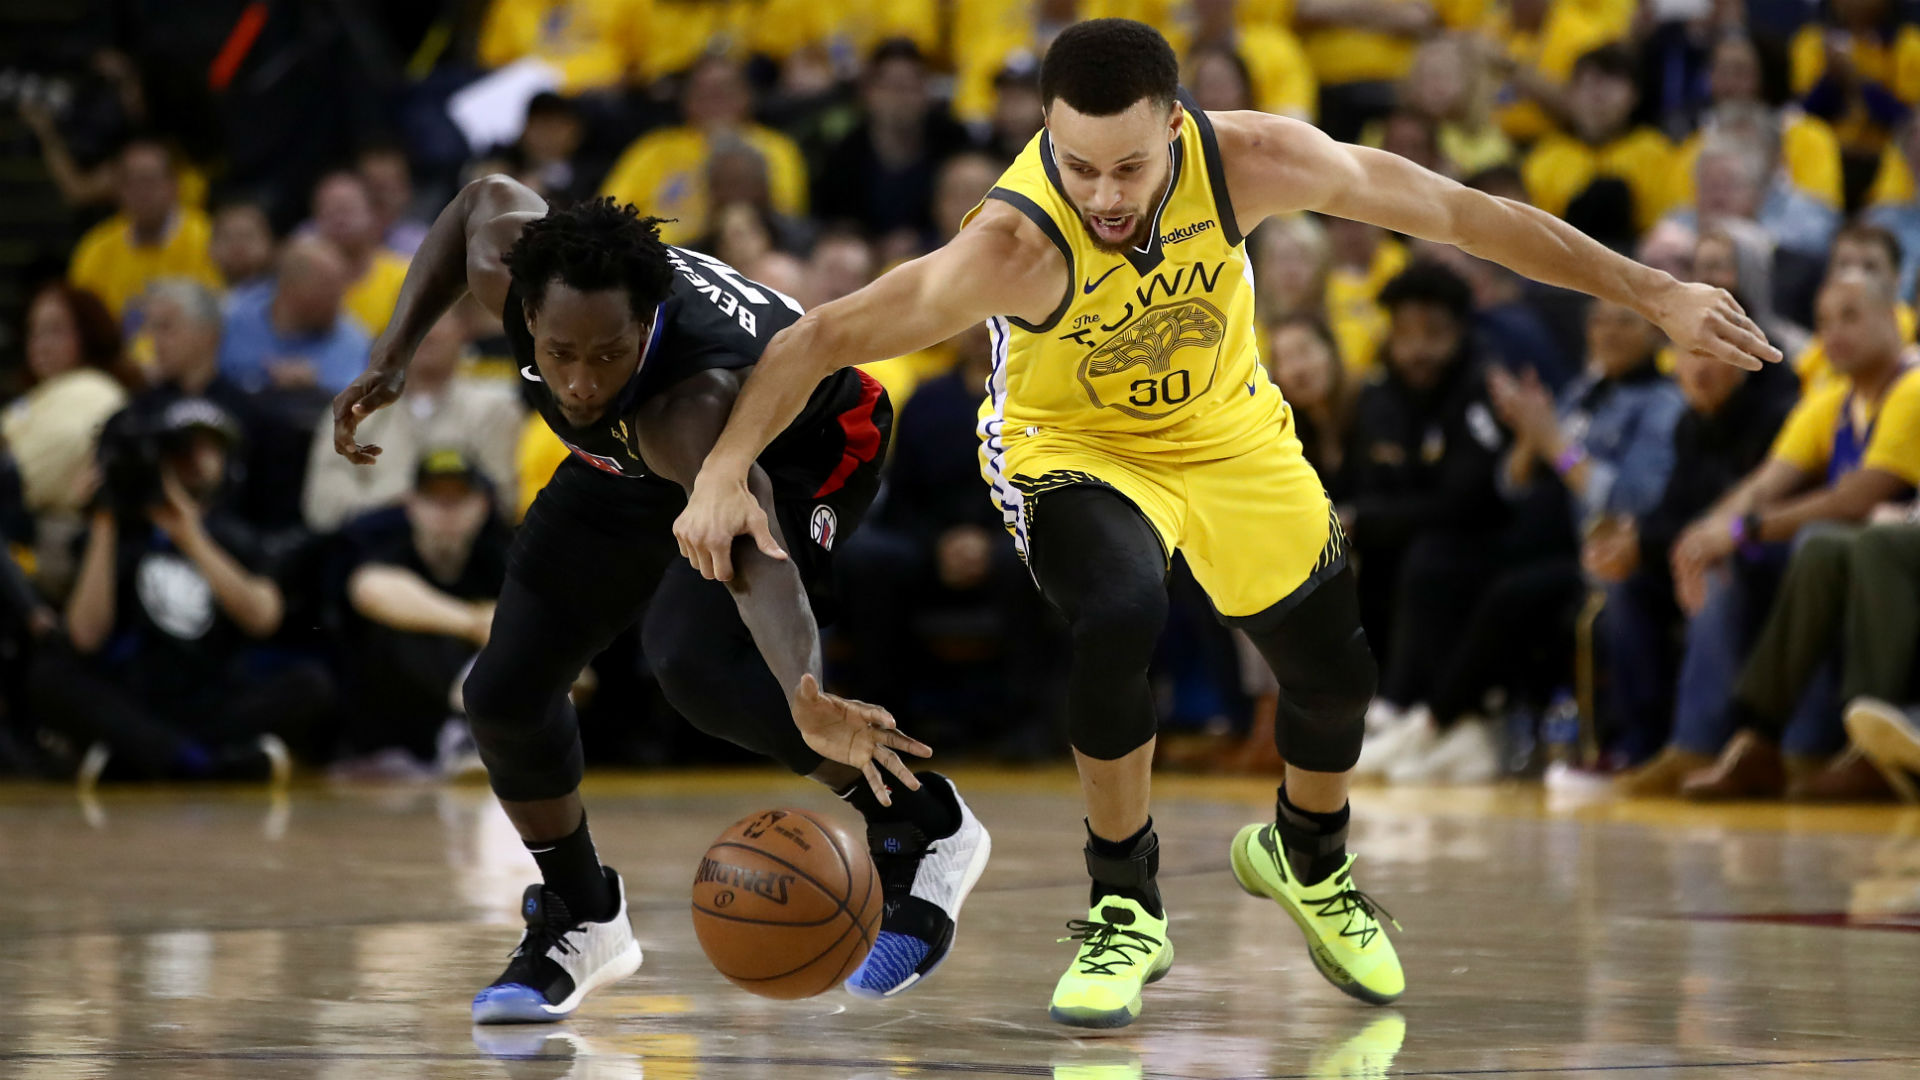 The wheels fell off - Curry not dwelling on Warriors' historic loss